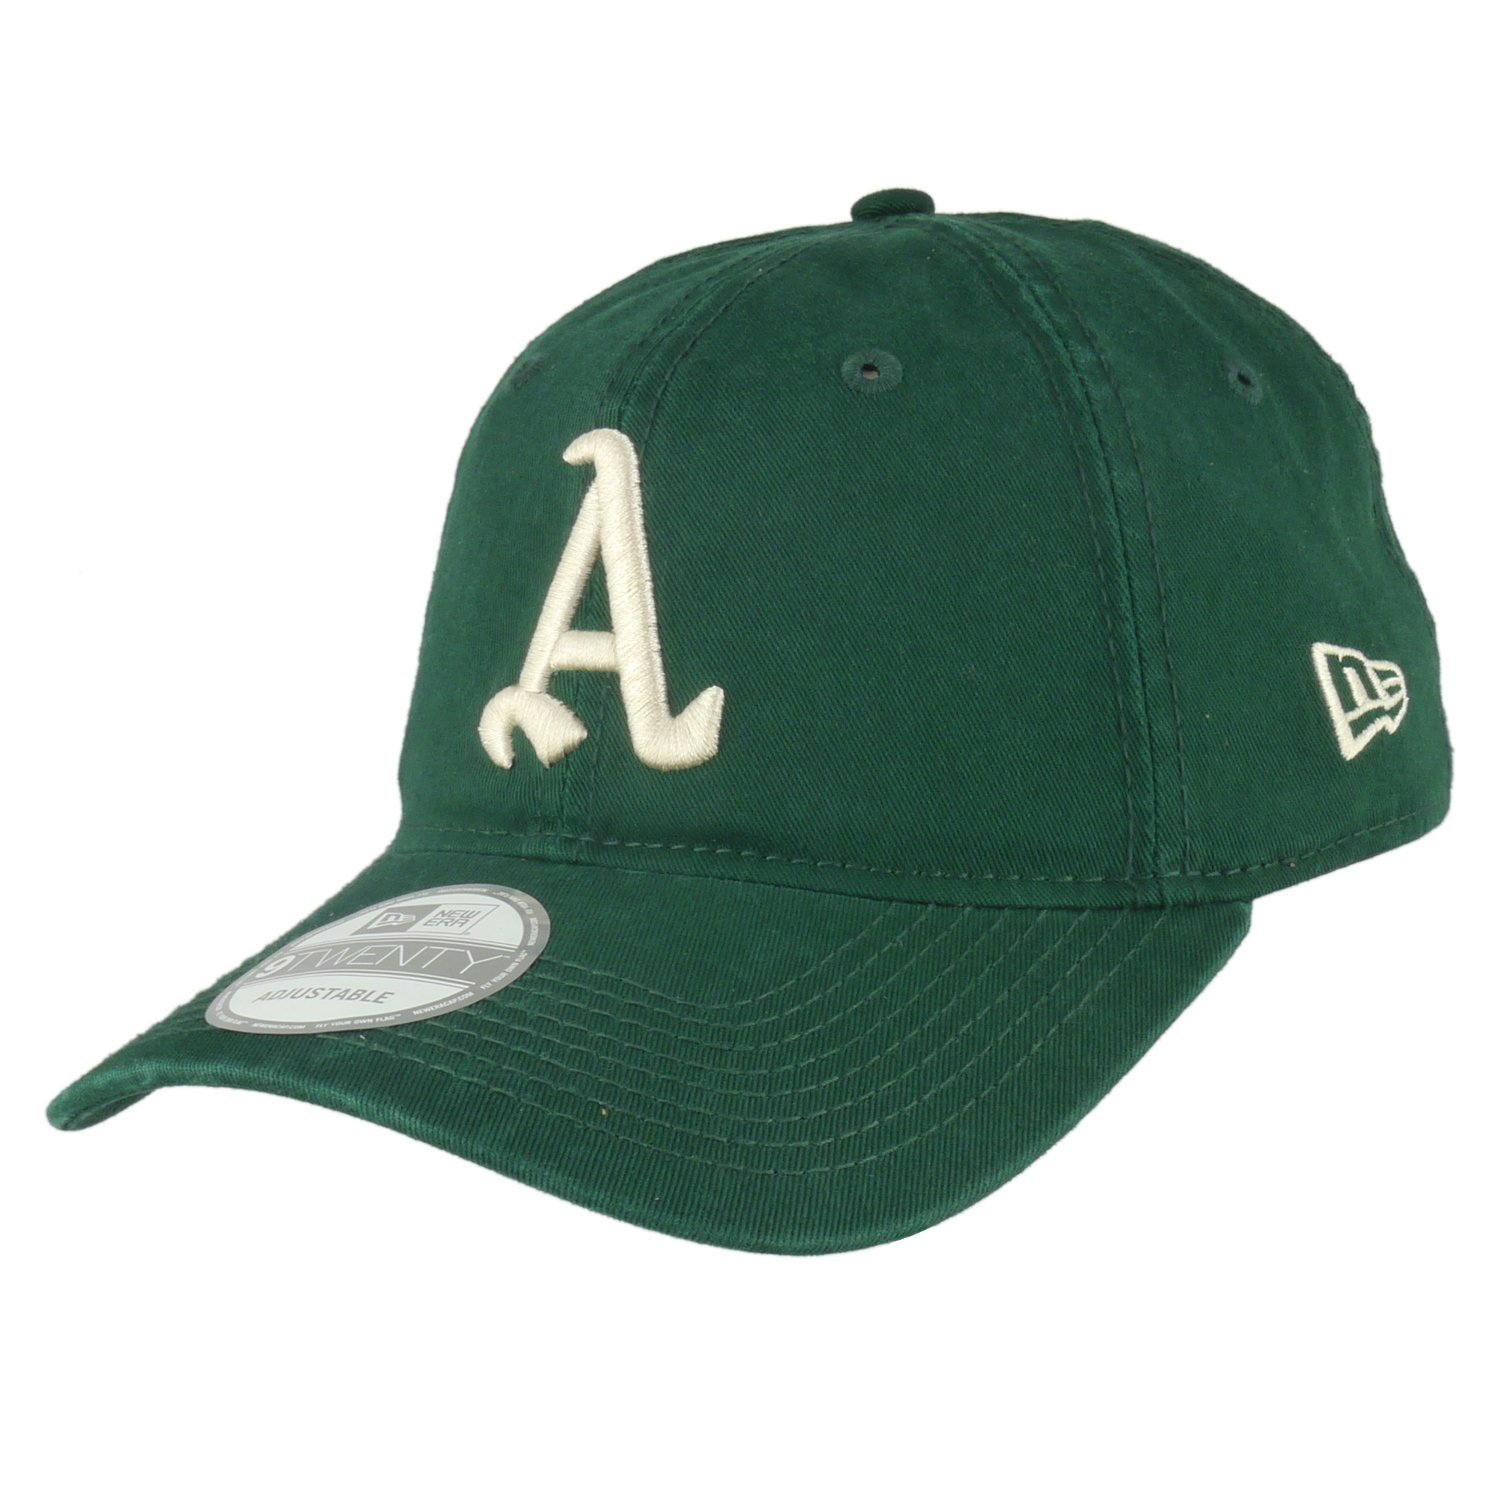 cheap for discount ee0ac 71b47 New Era 9TWENTY Oakland Athletics Cap - O S at Amazon Men s Clothing store